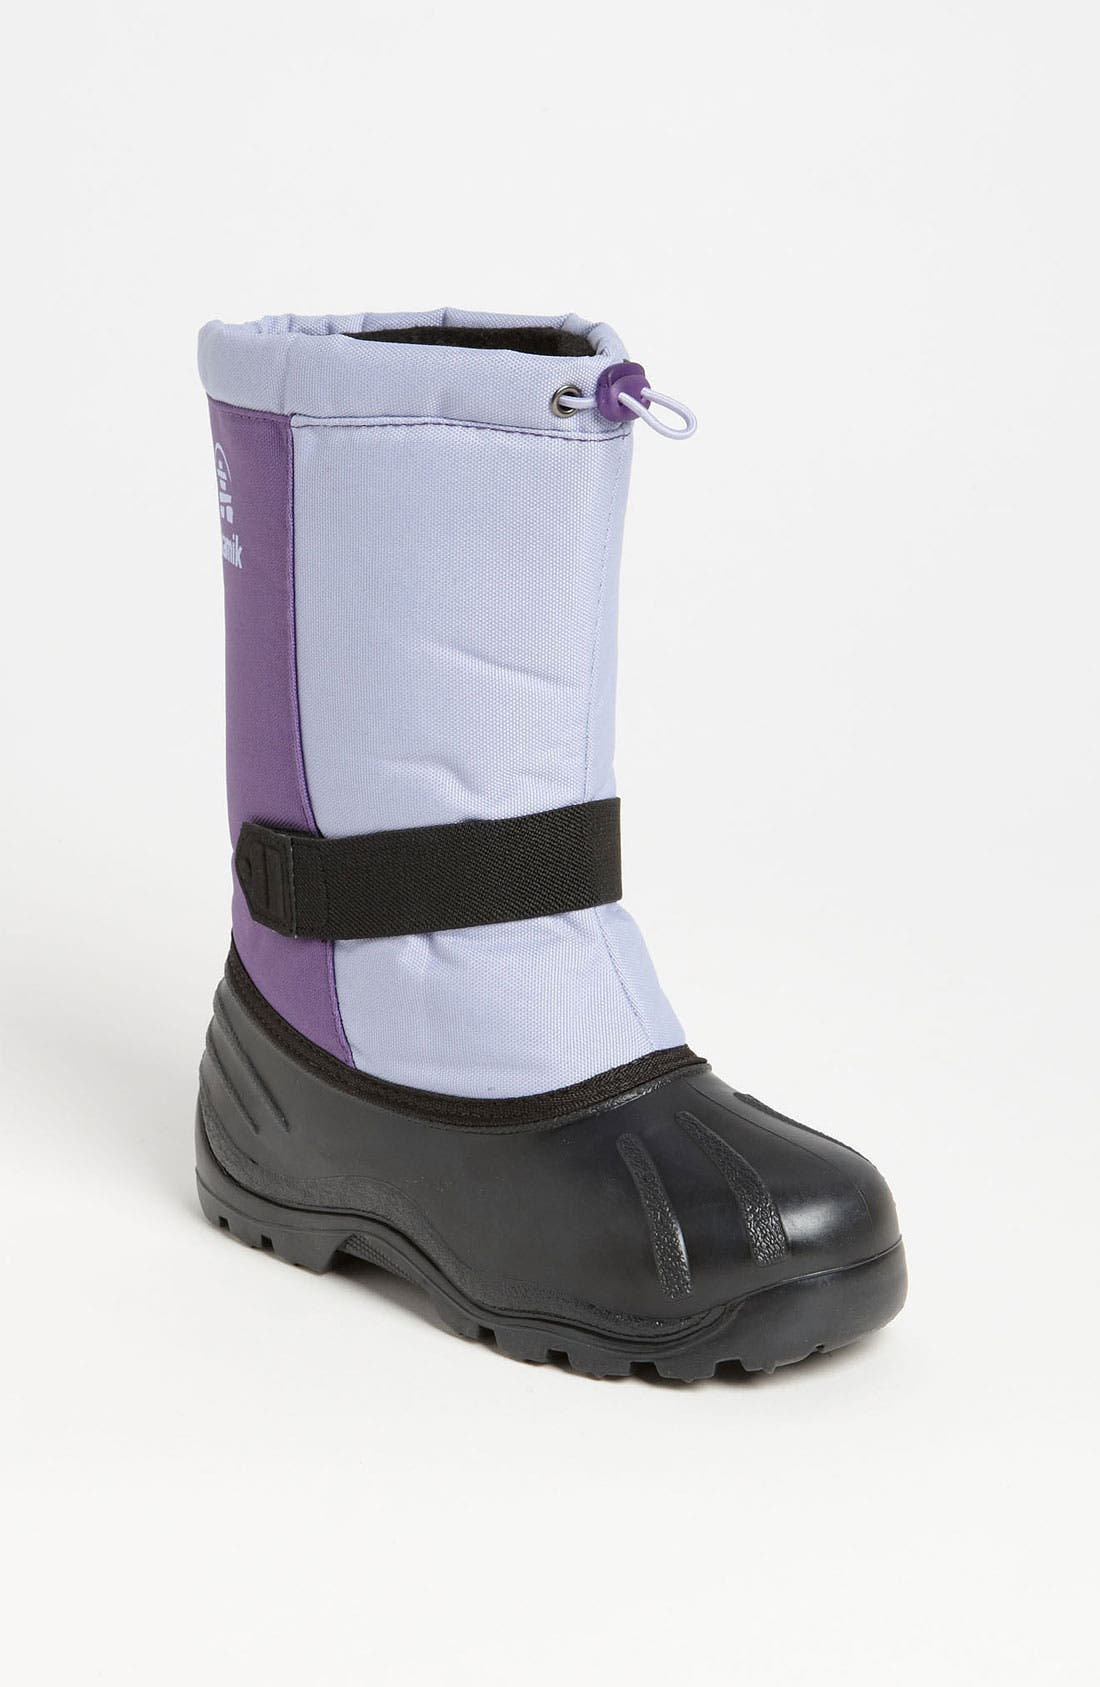 Main Image - Kamik 'Fireball' Snow Boot (Toddler, Little Kid & Big Kid)(Special Purchase)